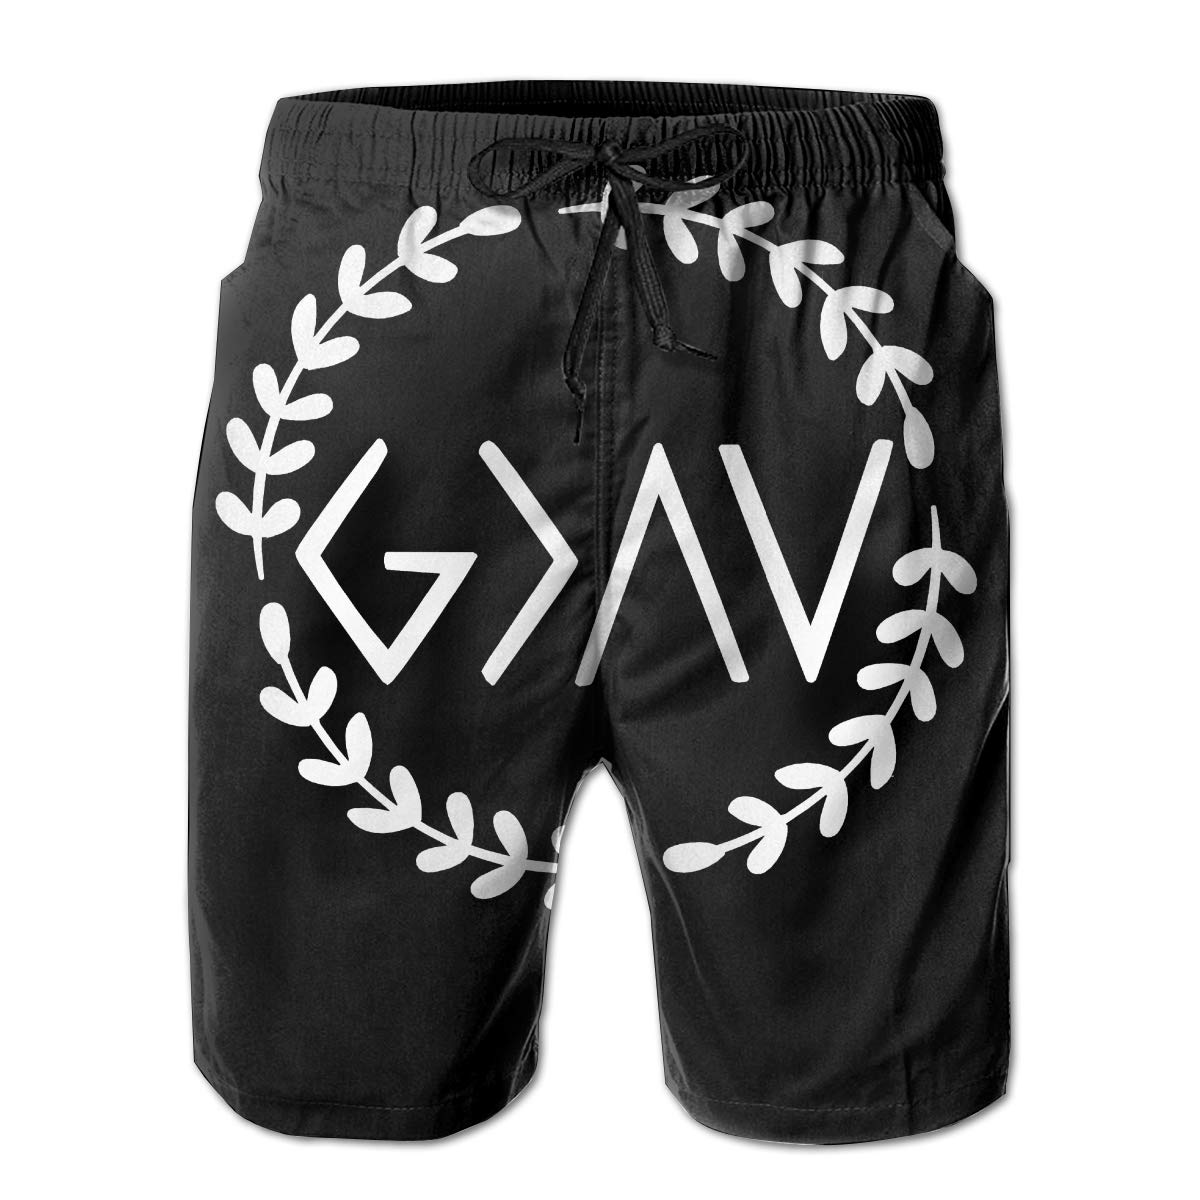 Eofjbg Fashion Mens God is Greater Than The Highs and Lows Beach Shorts Board Shorts Casual Shorts Swim Trunks